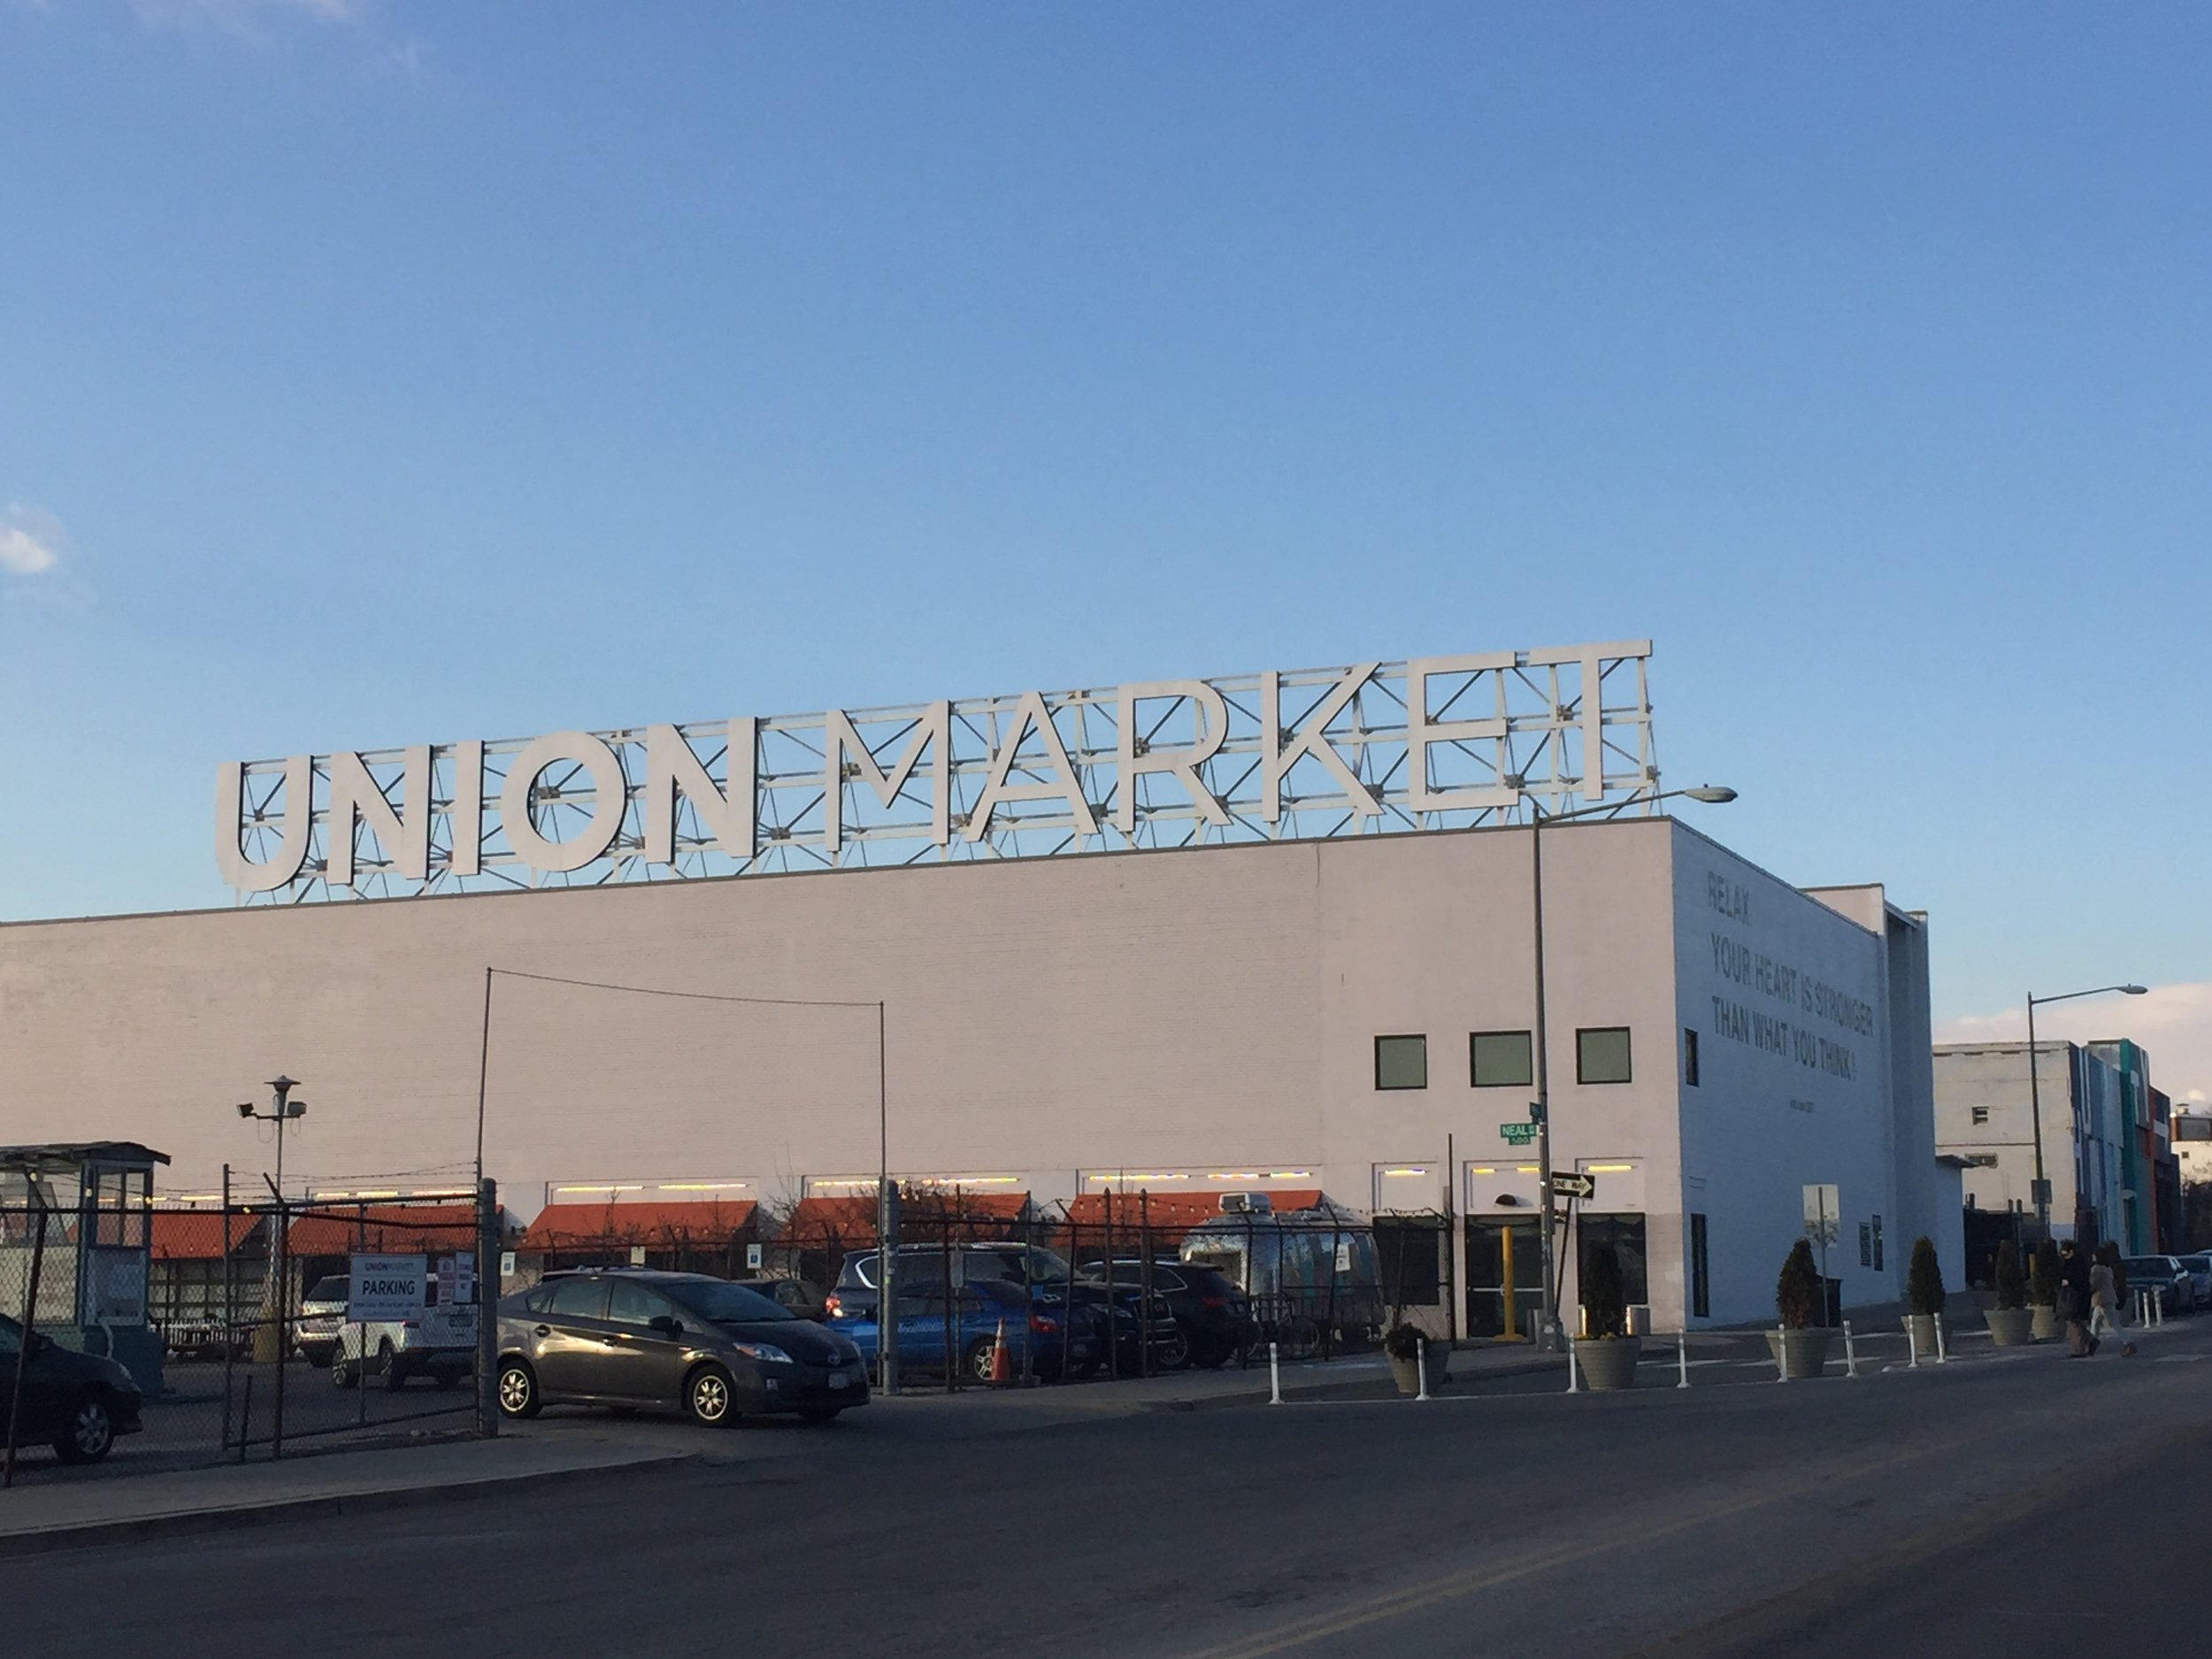 Union Market, a upscale food hall, in Washington, DC